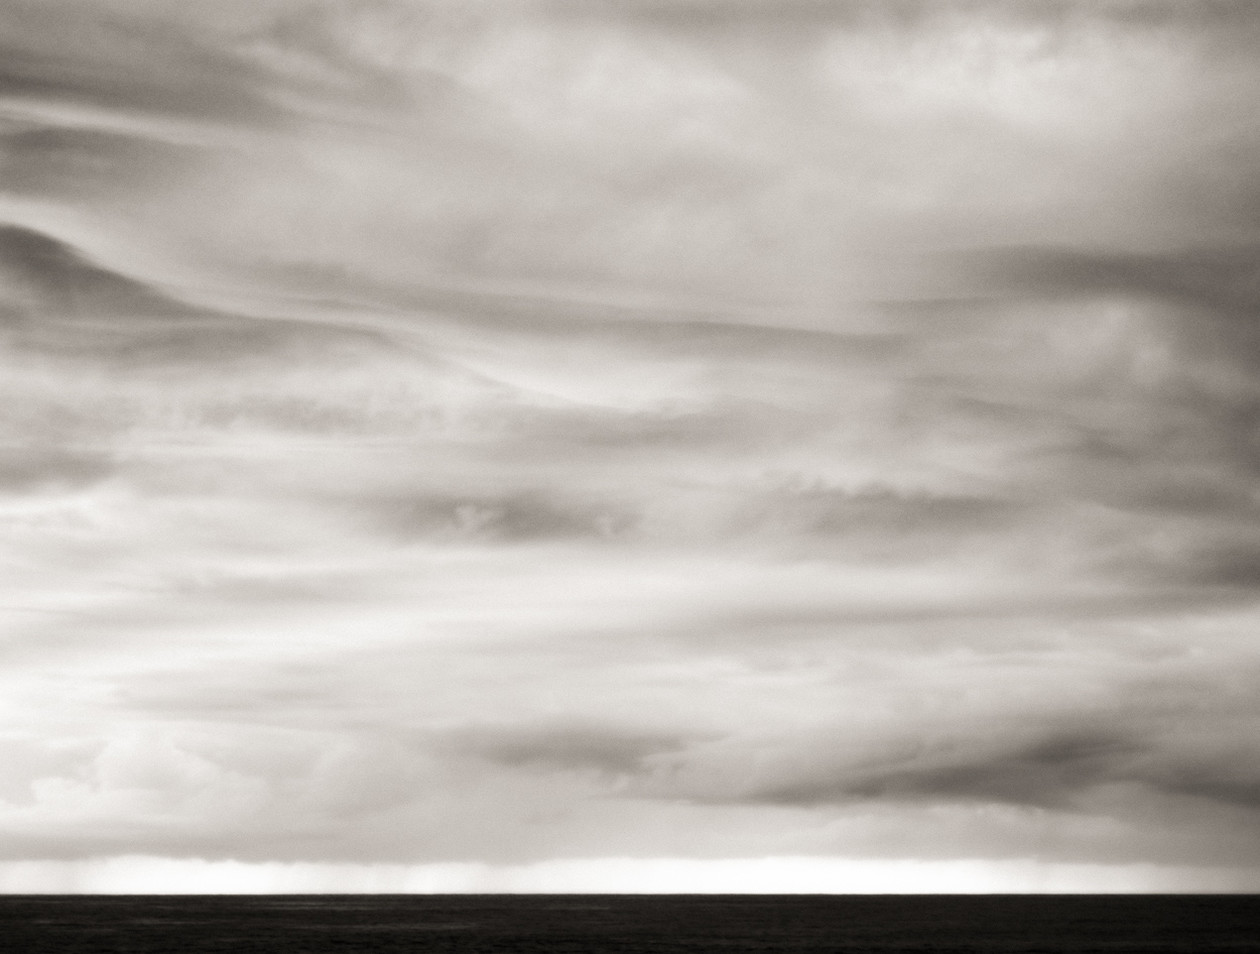 Horizon and Storm Clouds (2005) by Jeffrey Conley